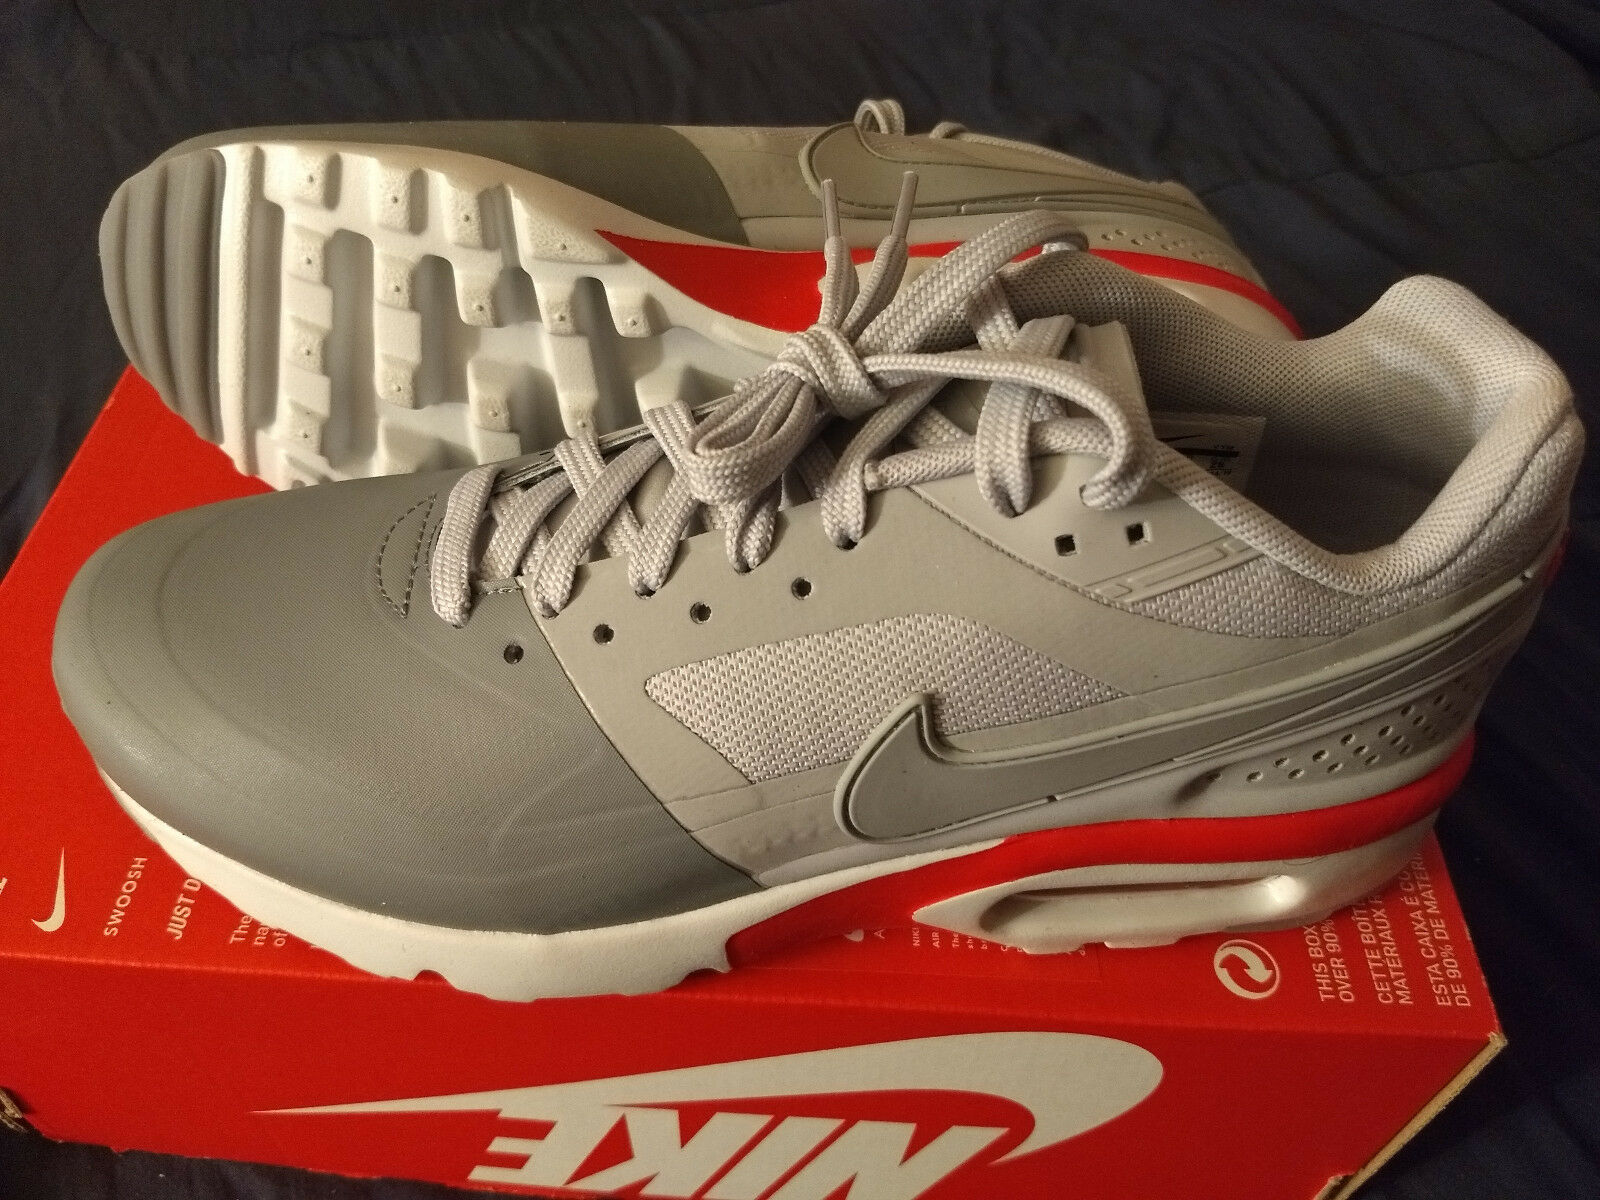 Nike Air Max BW Ultra SE cool wolf grey men's shoe size 9.5 844967 005 NEW